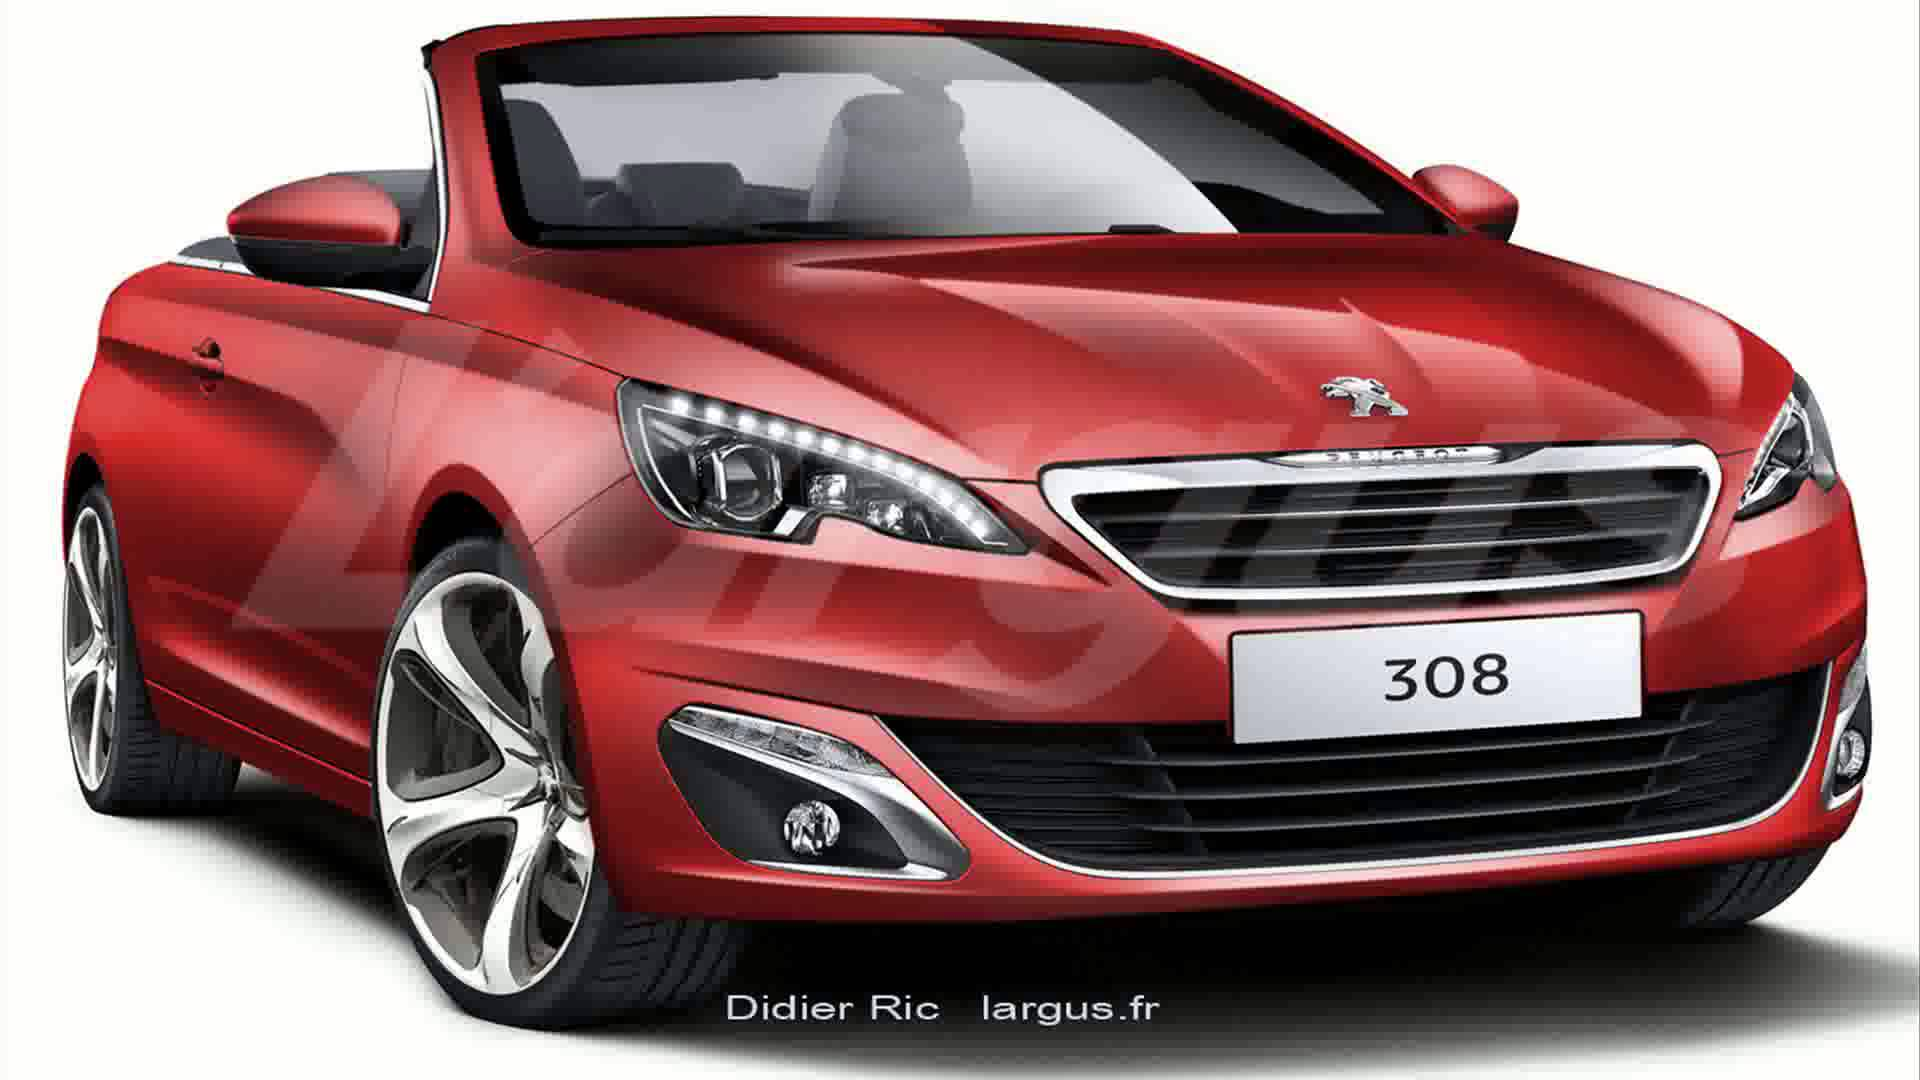 2015 peugeot 308 cc partsopen. Black Bedroom Furniture Sets. Home Design Ideas